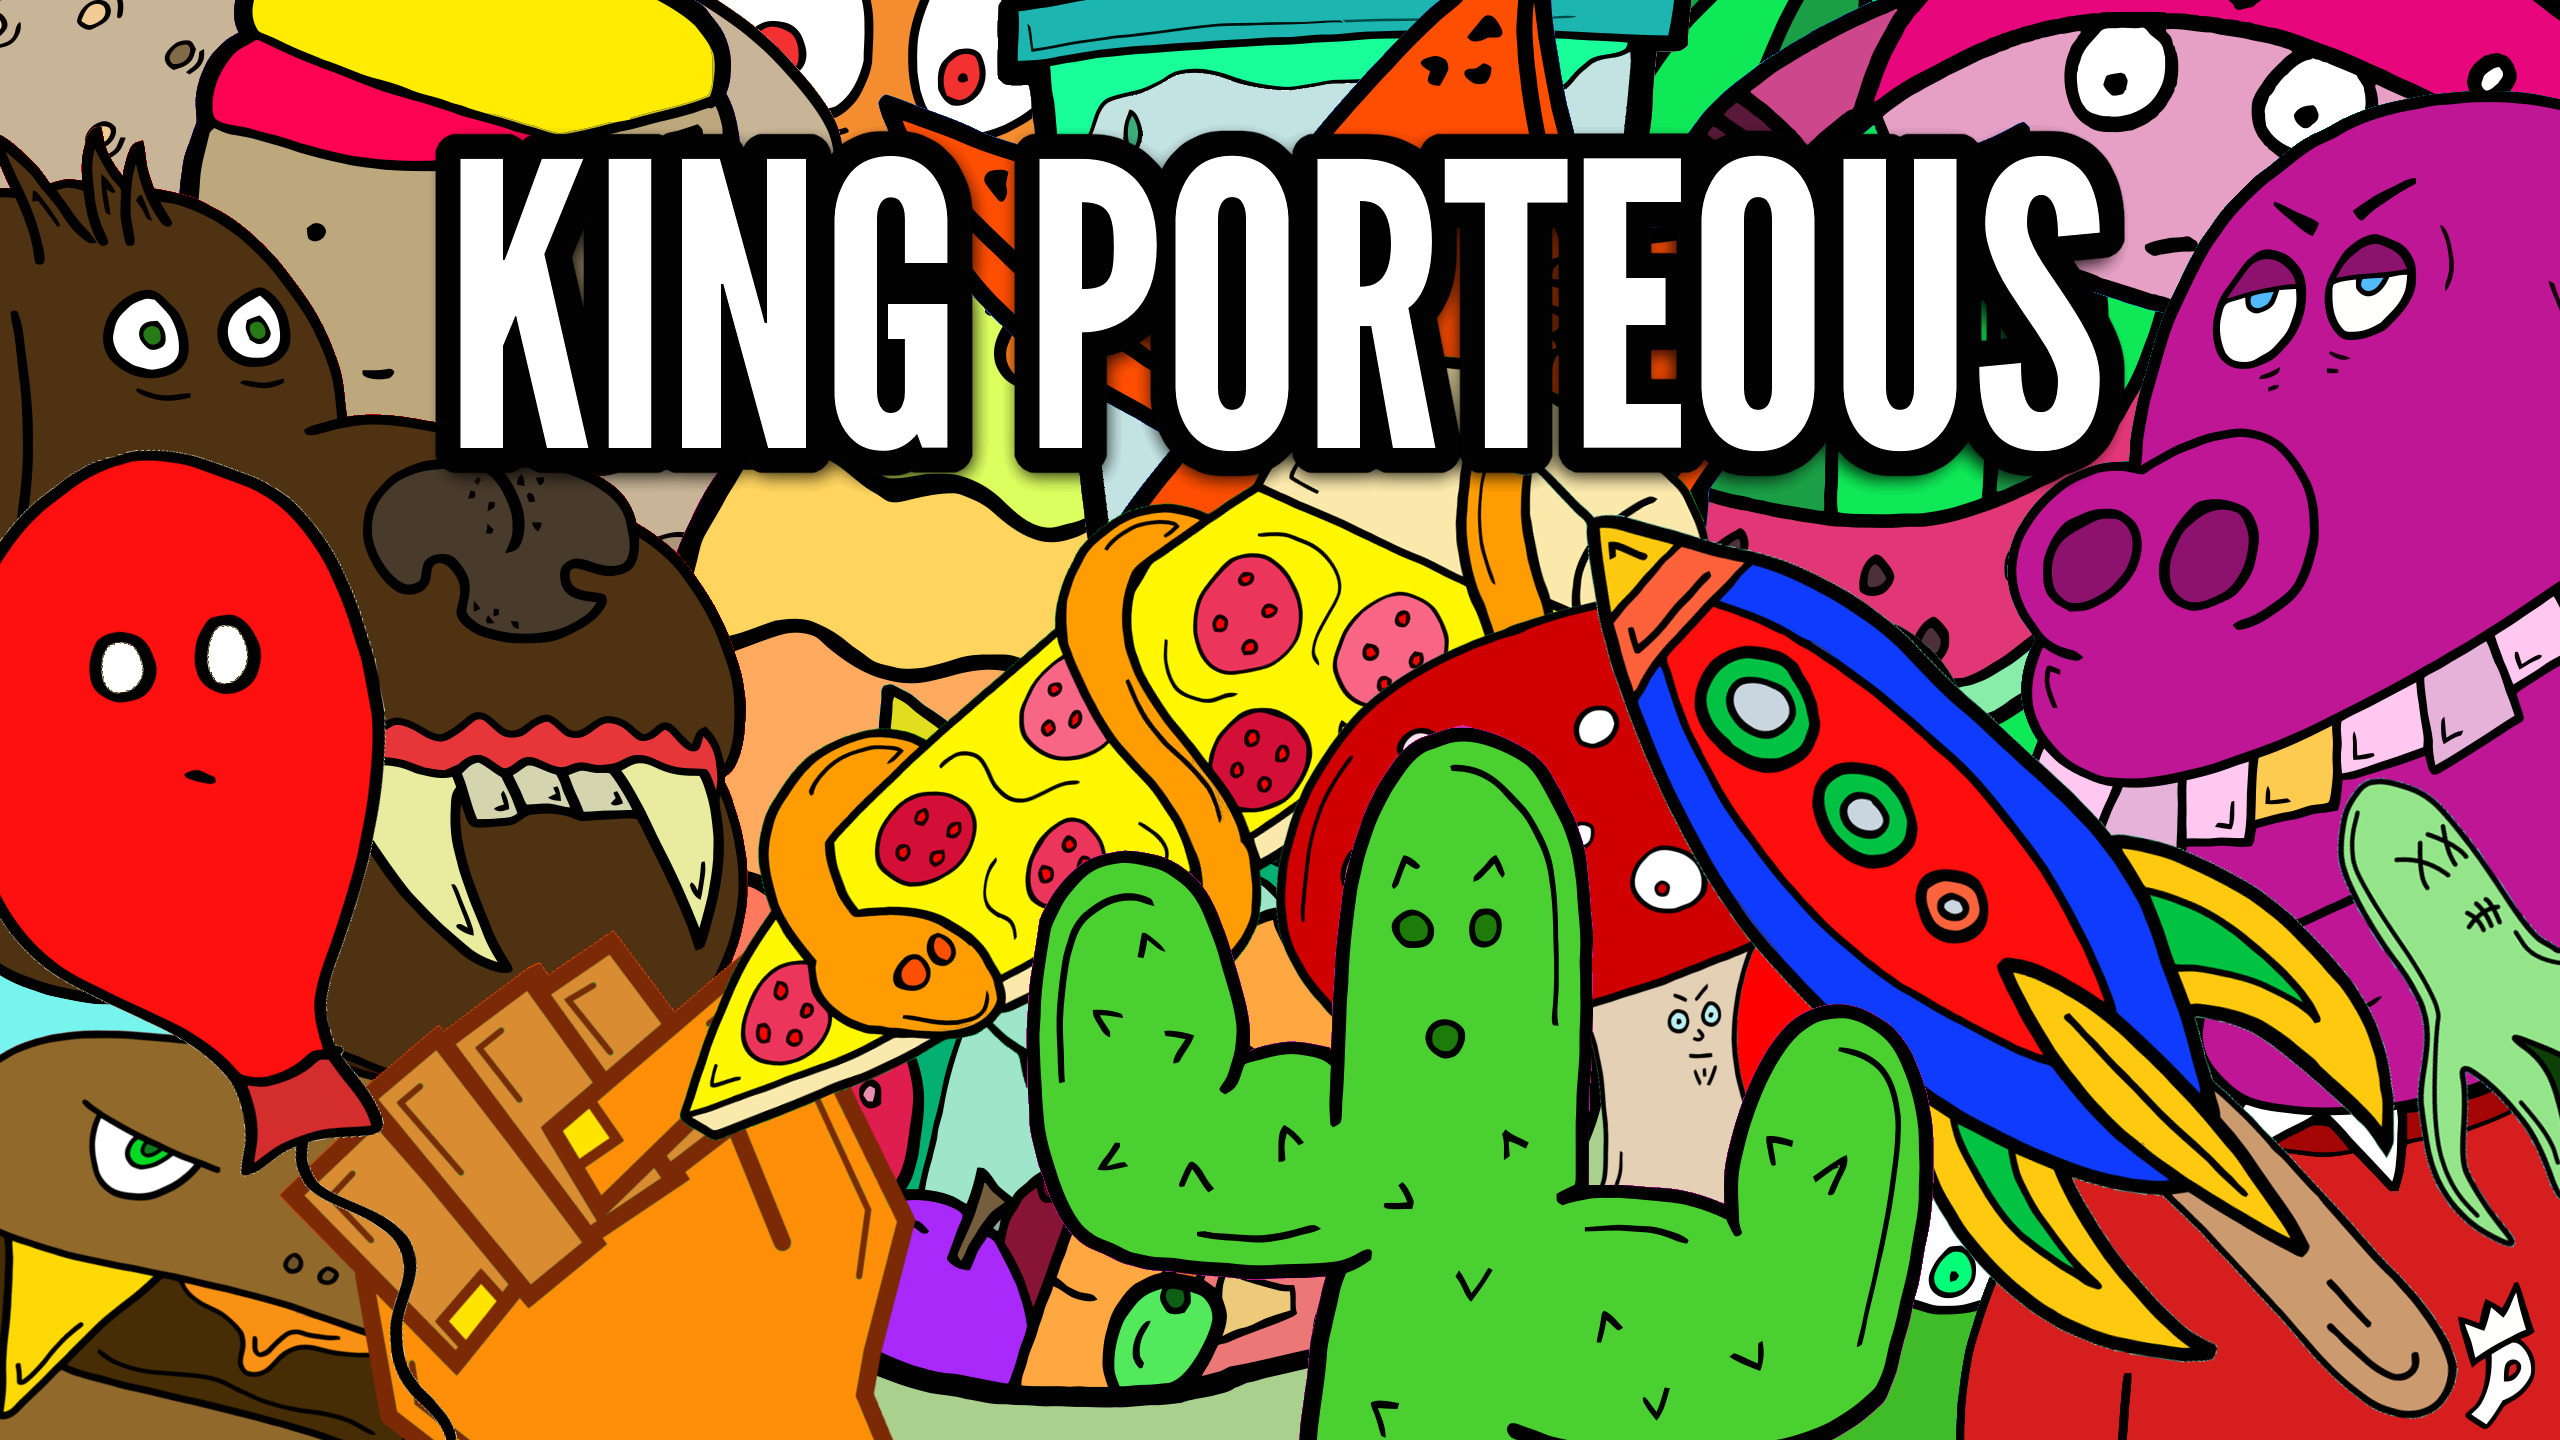 kingporteous (@kingporteous) Cover Image